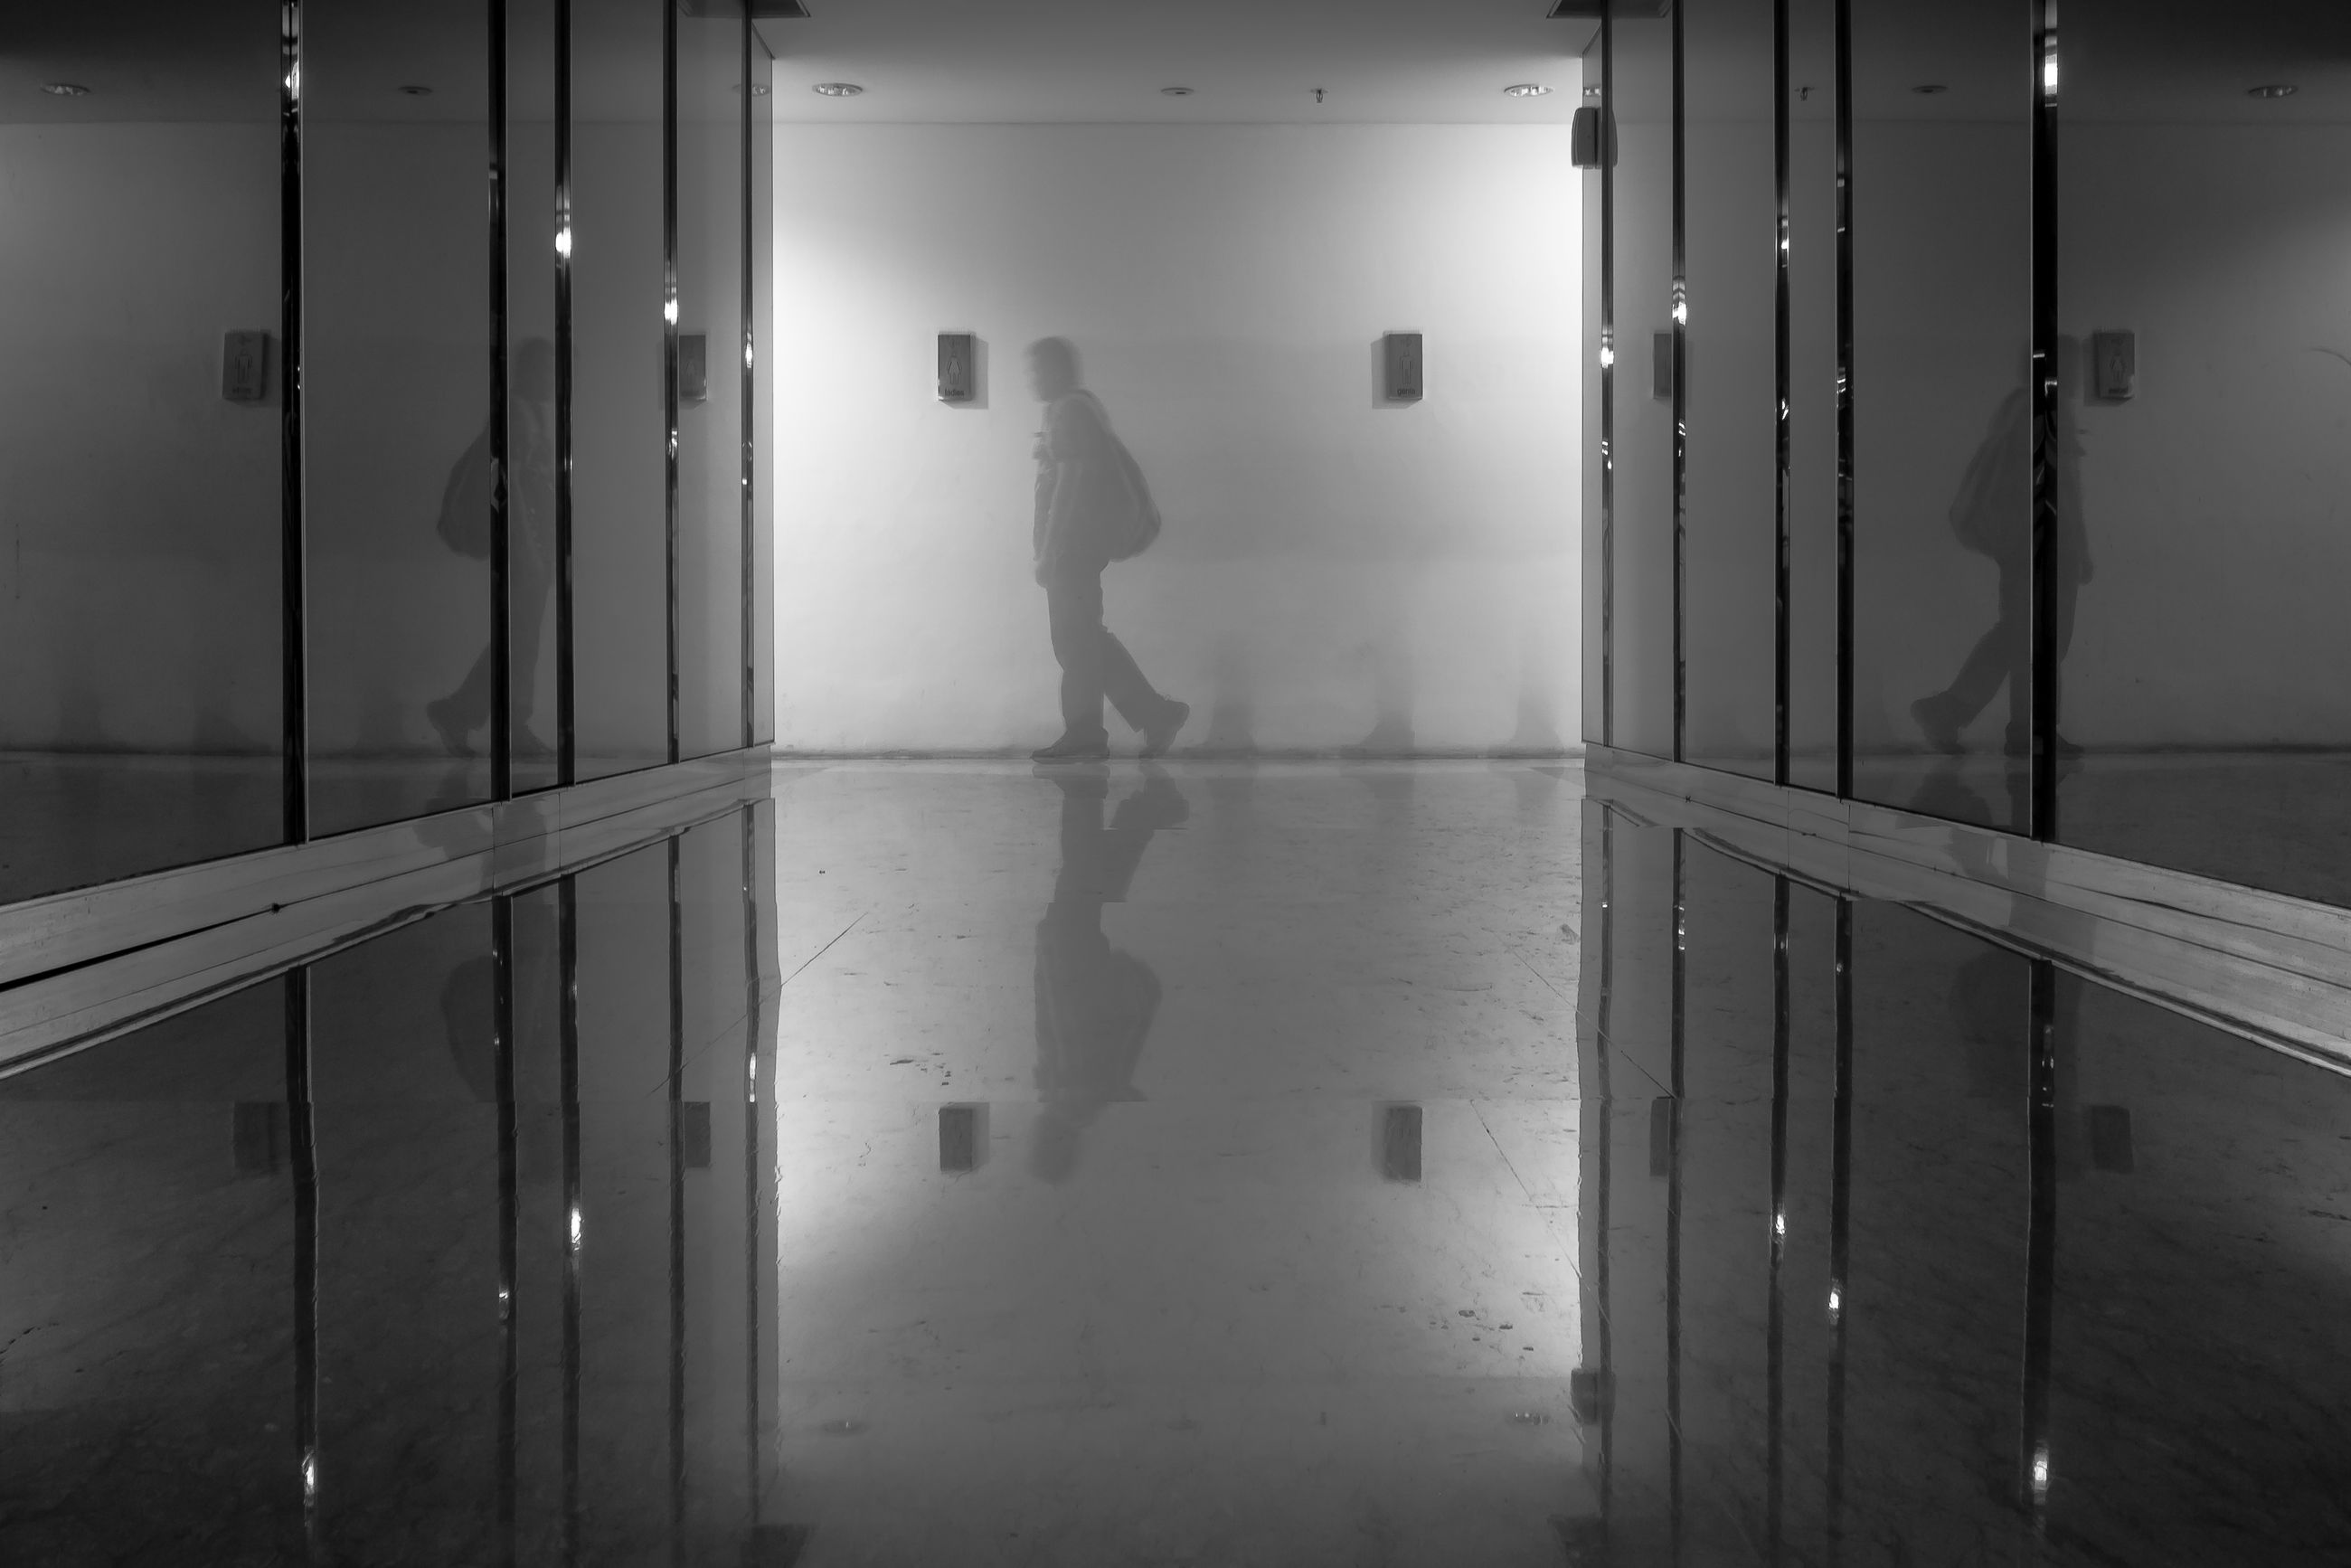 one person, indoors, real people, men, entrance, lifestyles, standing, door, flooring, full length, reflection, leisure activity, building, dressing room, silhouette, domestic room, unrecognizable person, architecture, corridor